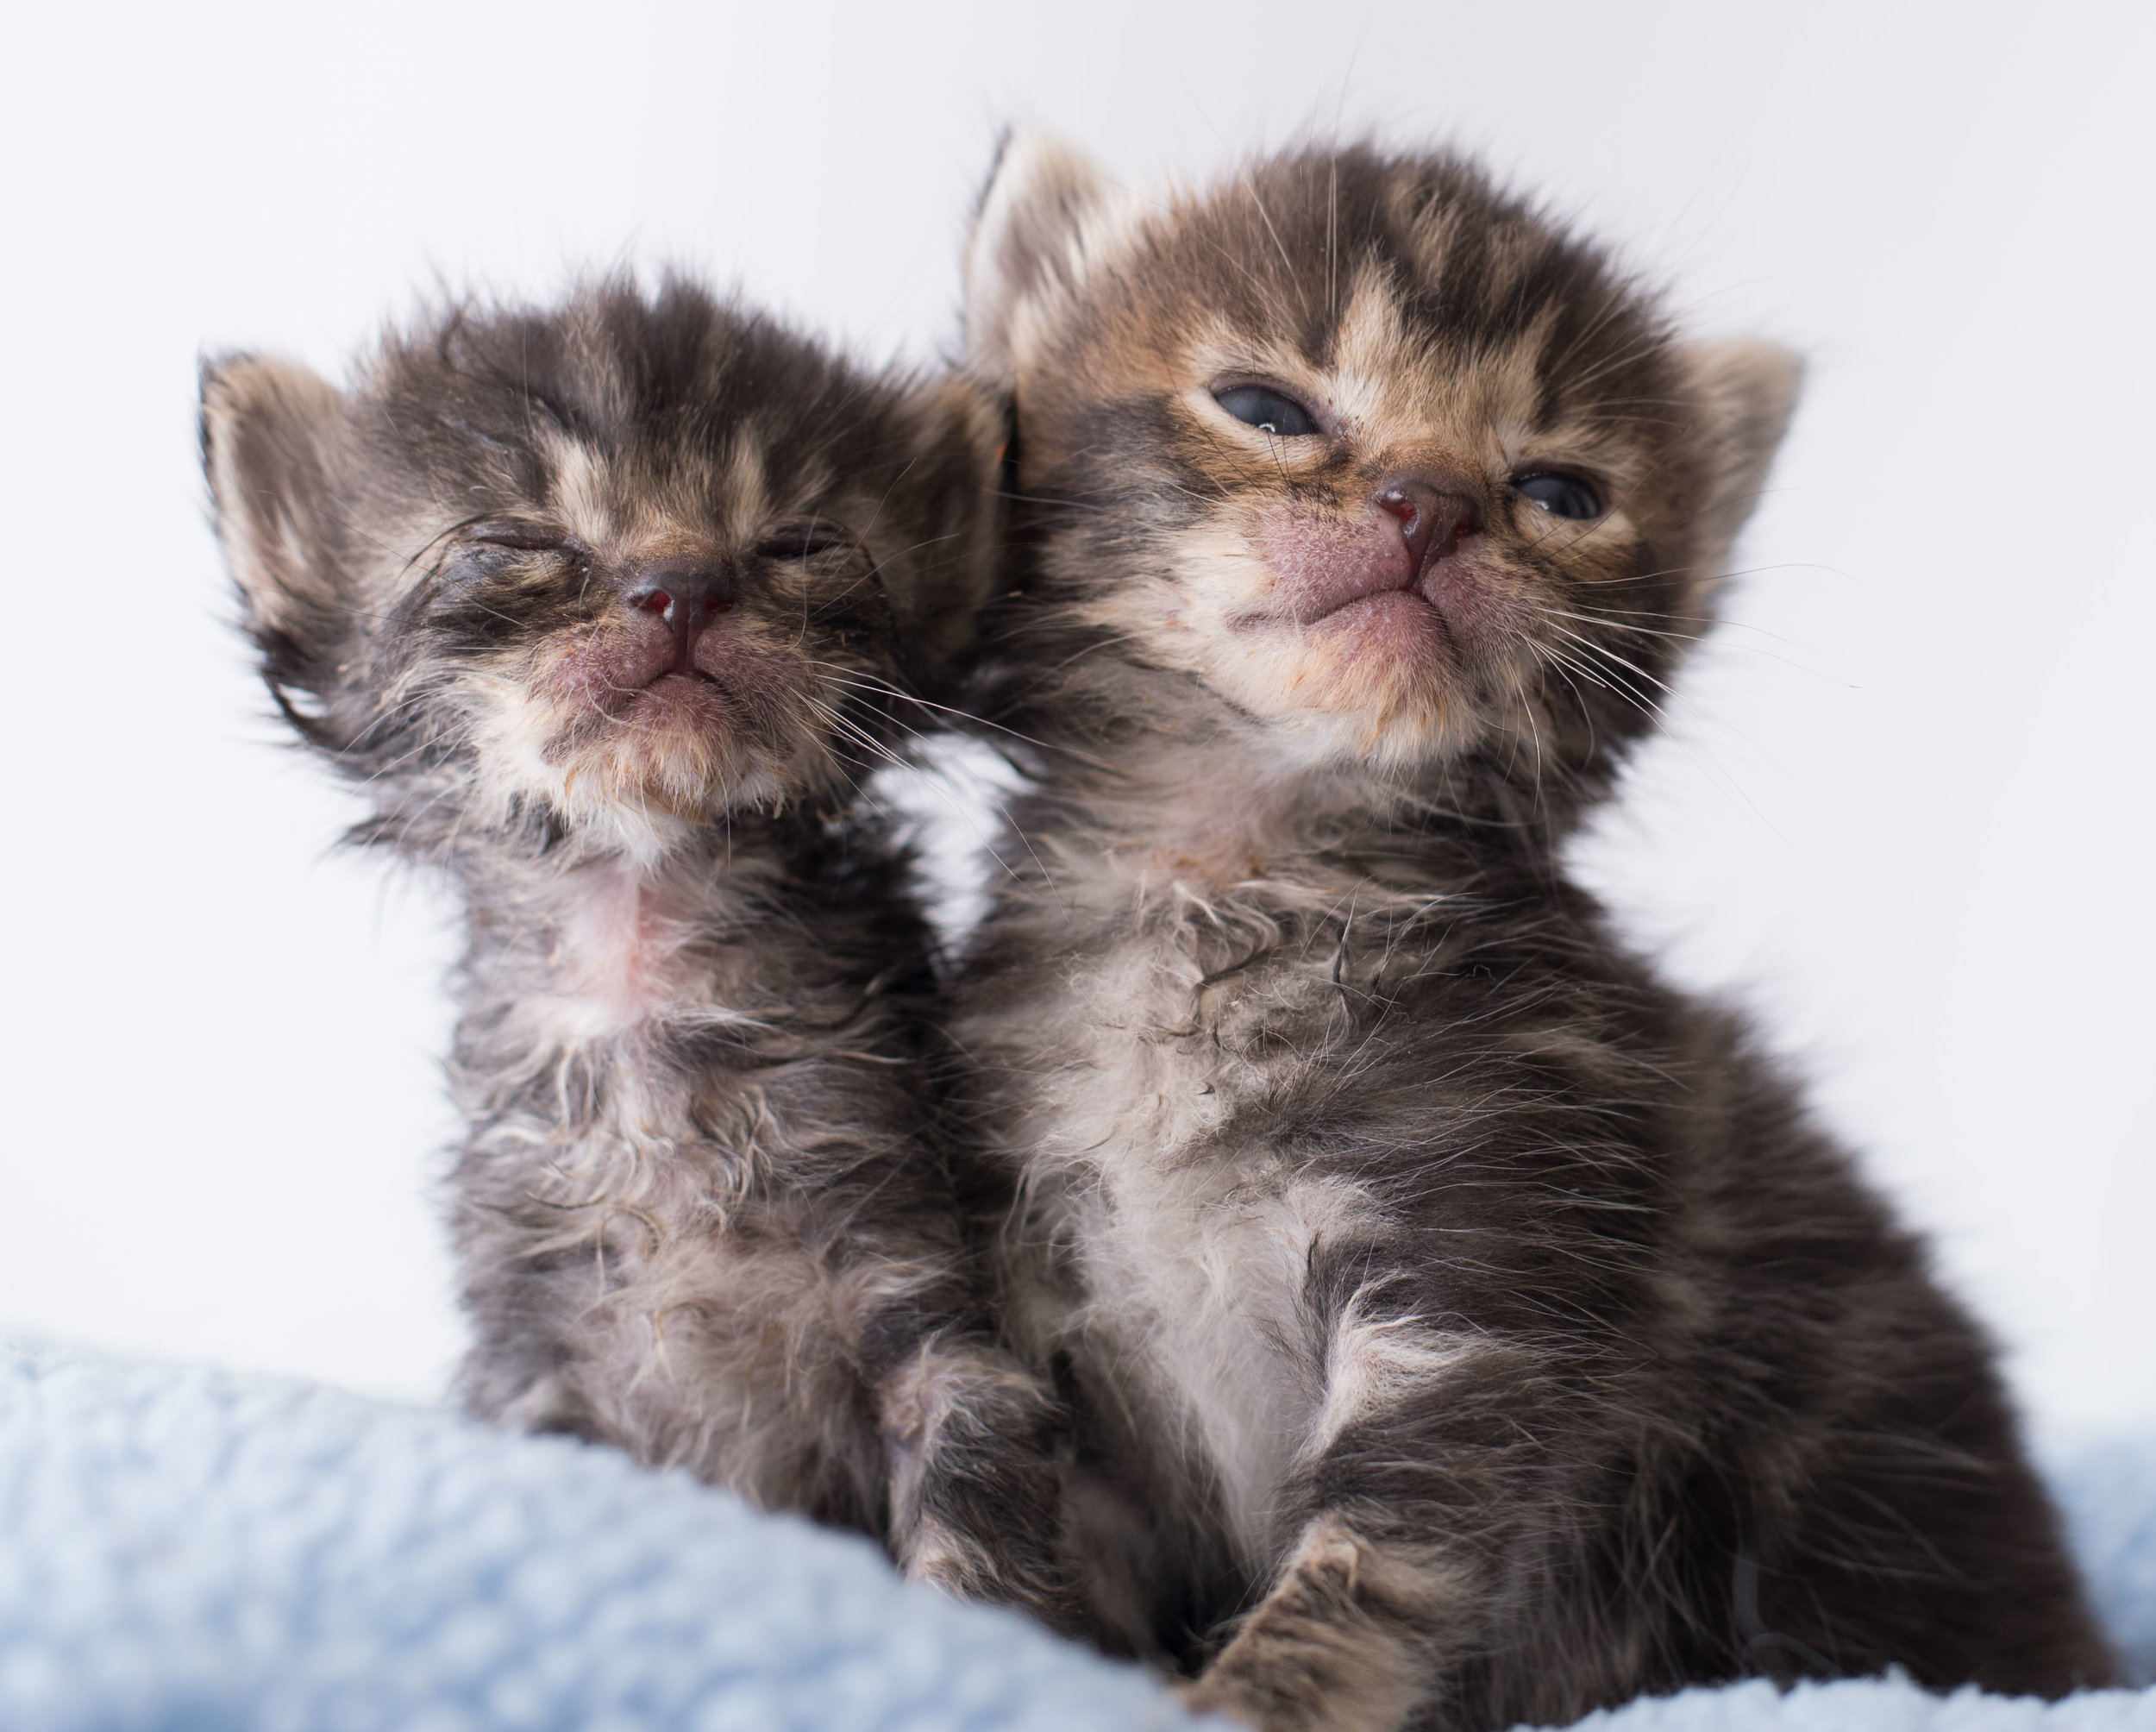 0d2502f4f If you've rescued a kitten that has discharge from the nose and/or eyes,  and you're hearing frequent sneezing or other respiratory noises, ...